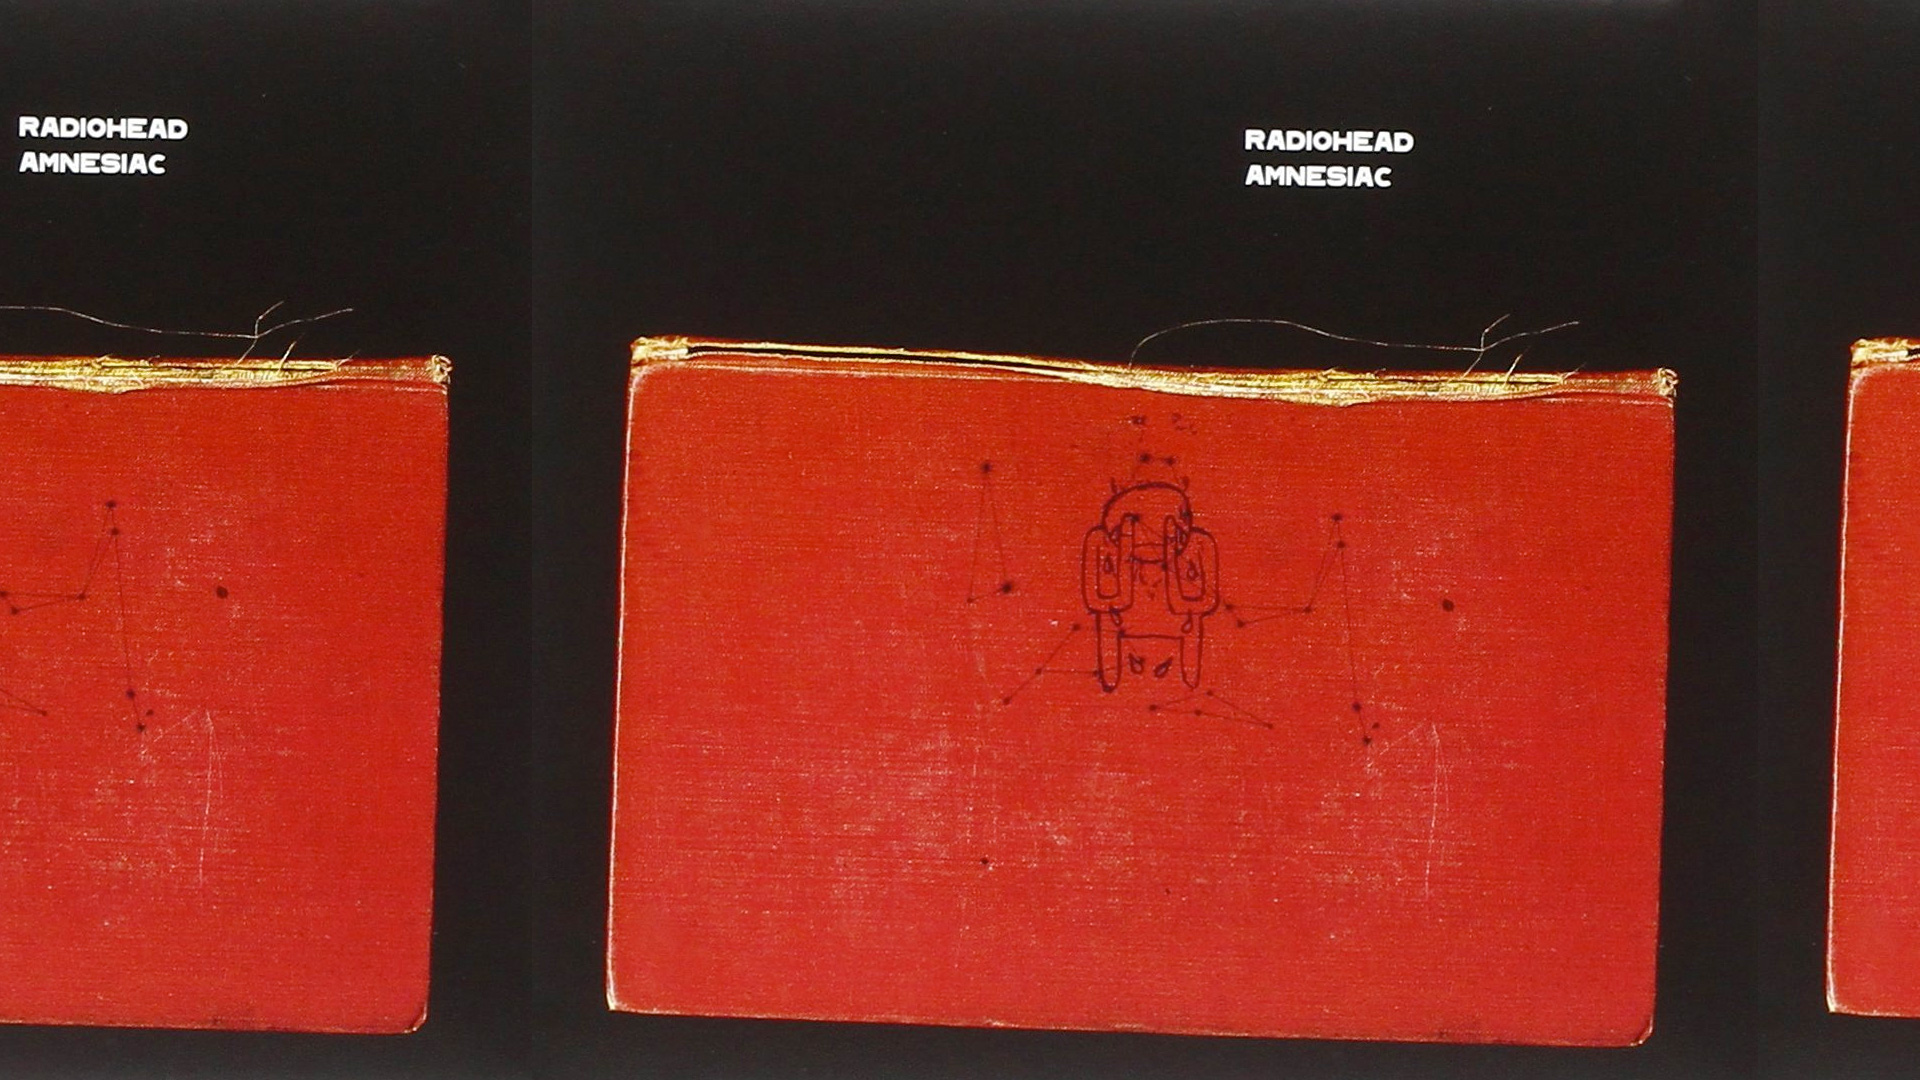 Best Radiohead Albums Everything in its right place 1920x1080